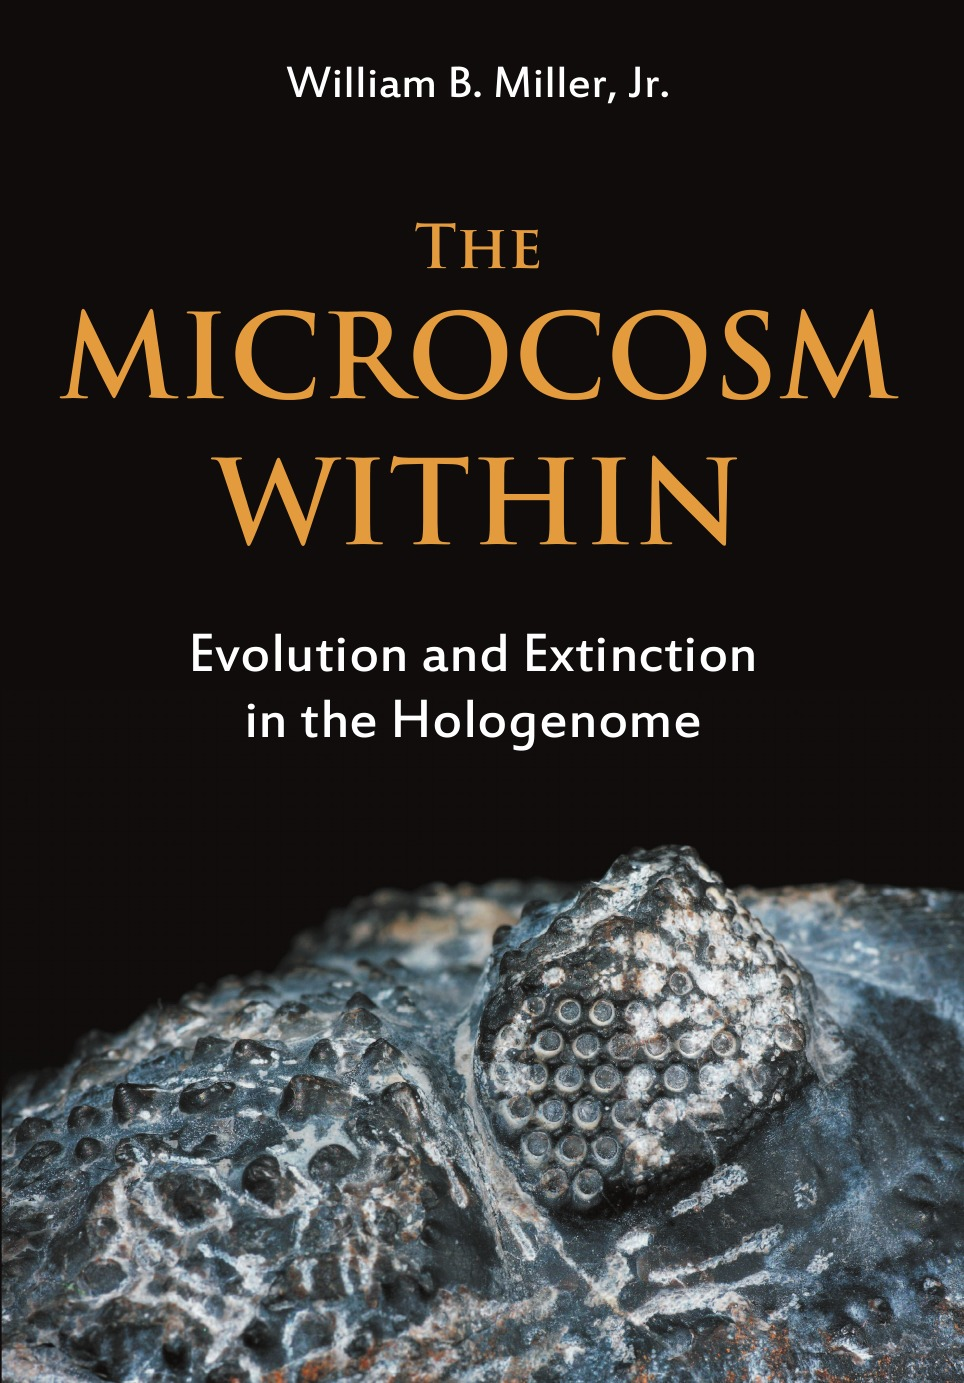 William B. Miller Jr The Microcosm Within. Evolution and Extinction in the Hologenome shattered self – the end of natural evolution